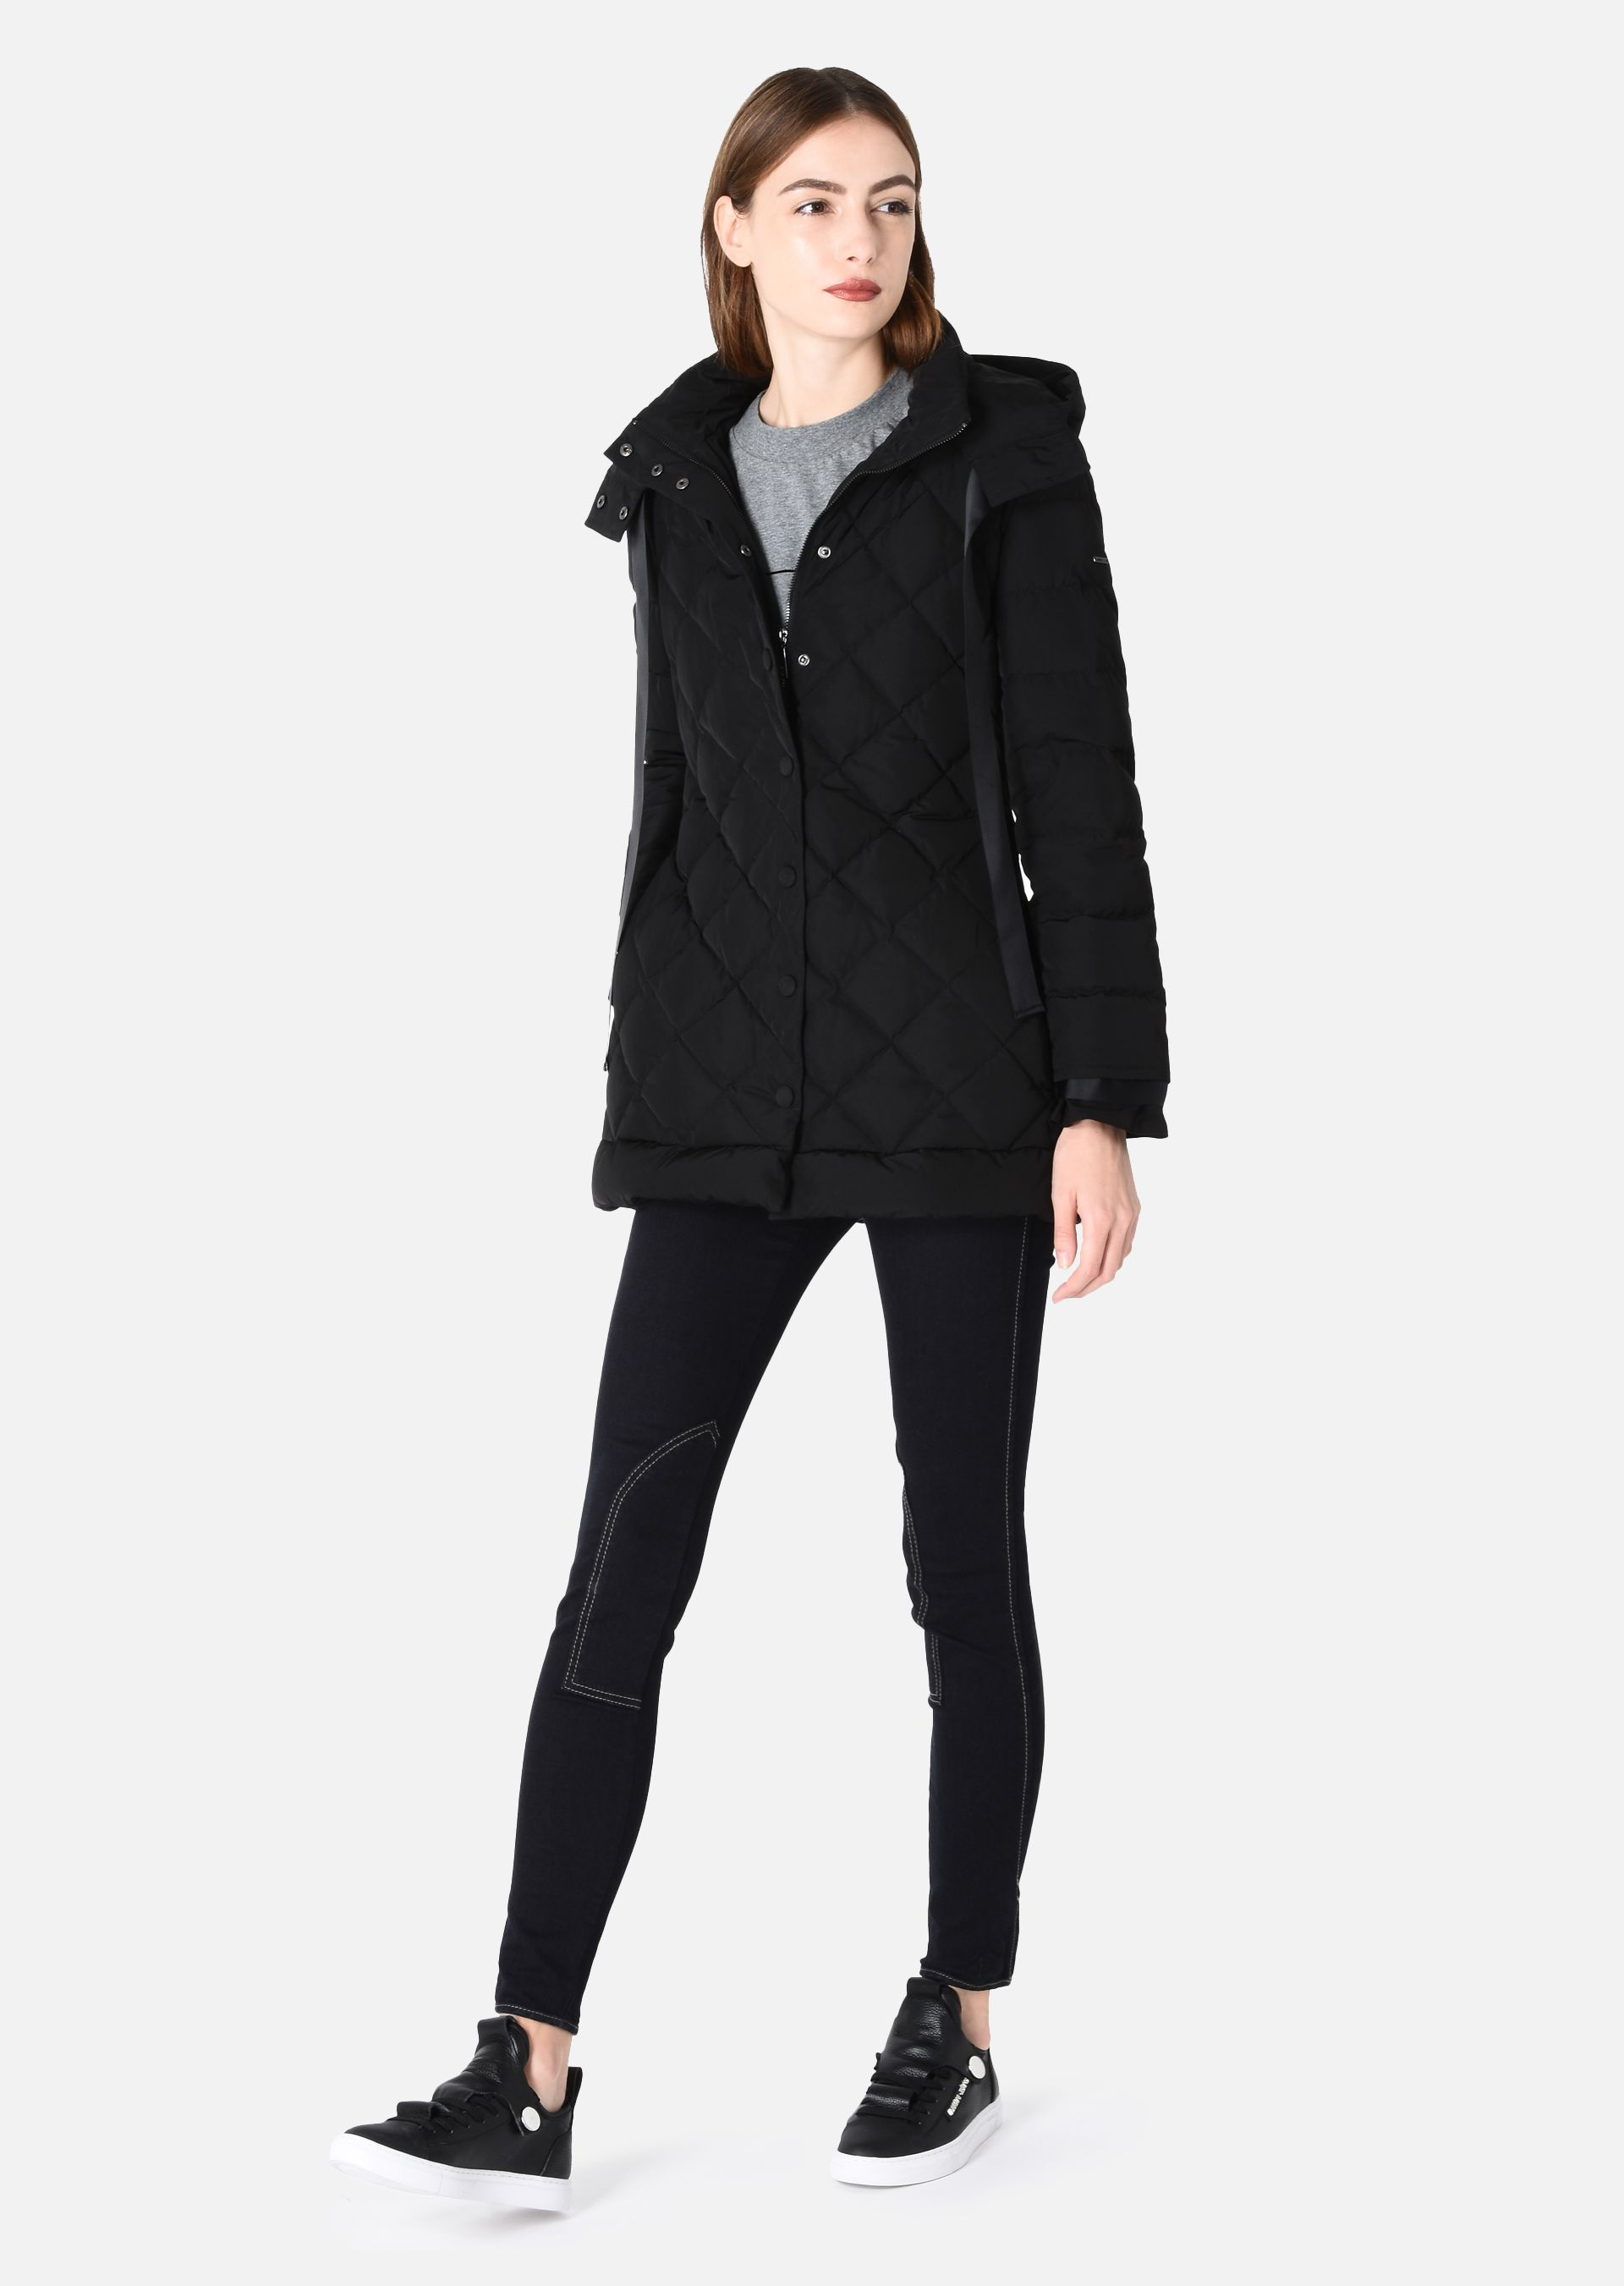 EMPORIO ARMANI PUFFER JACKETS - ITEM 41747830